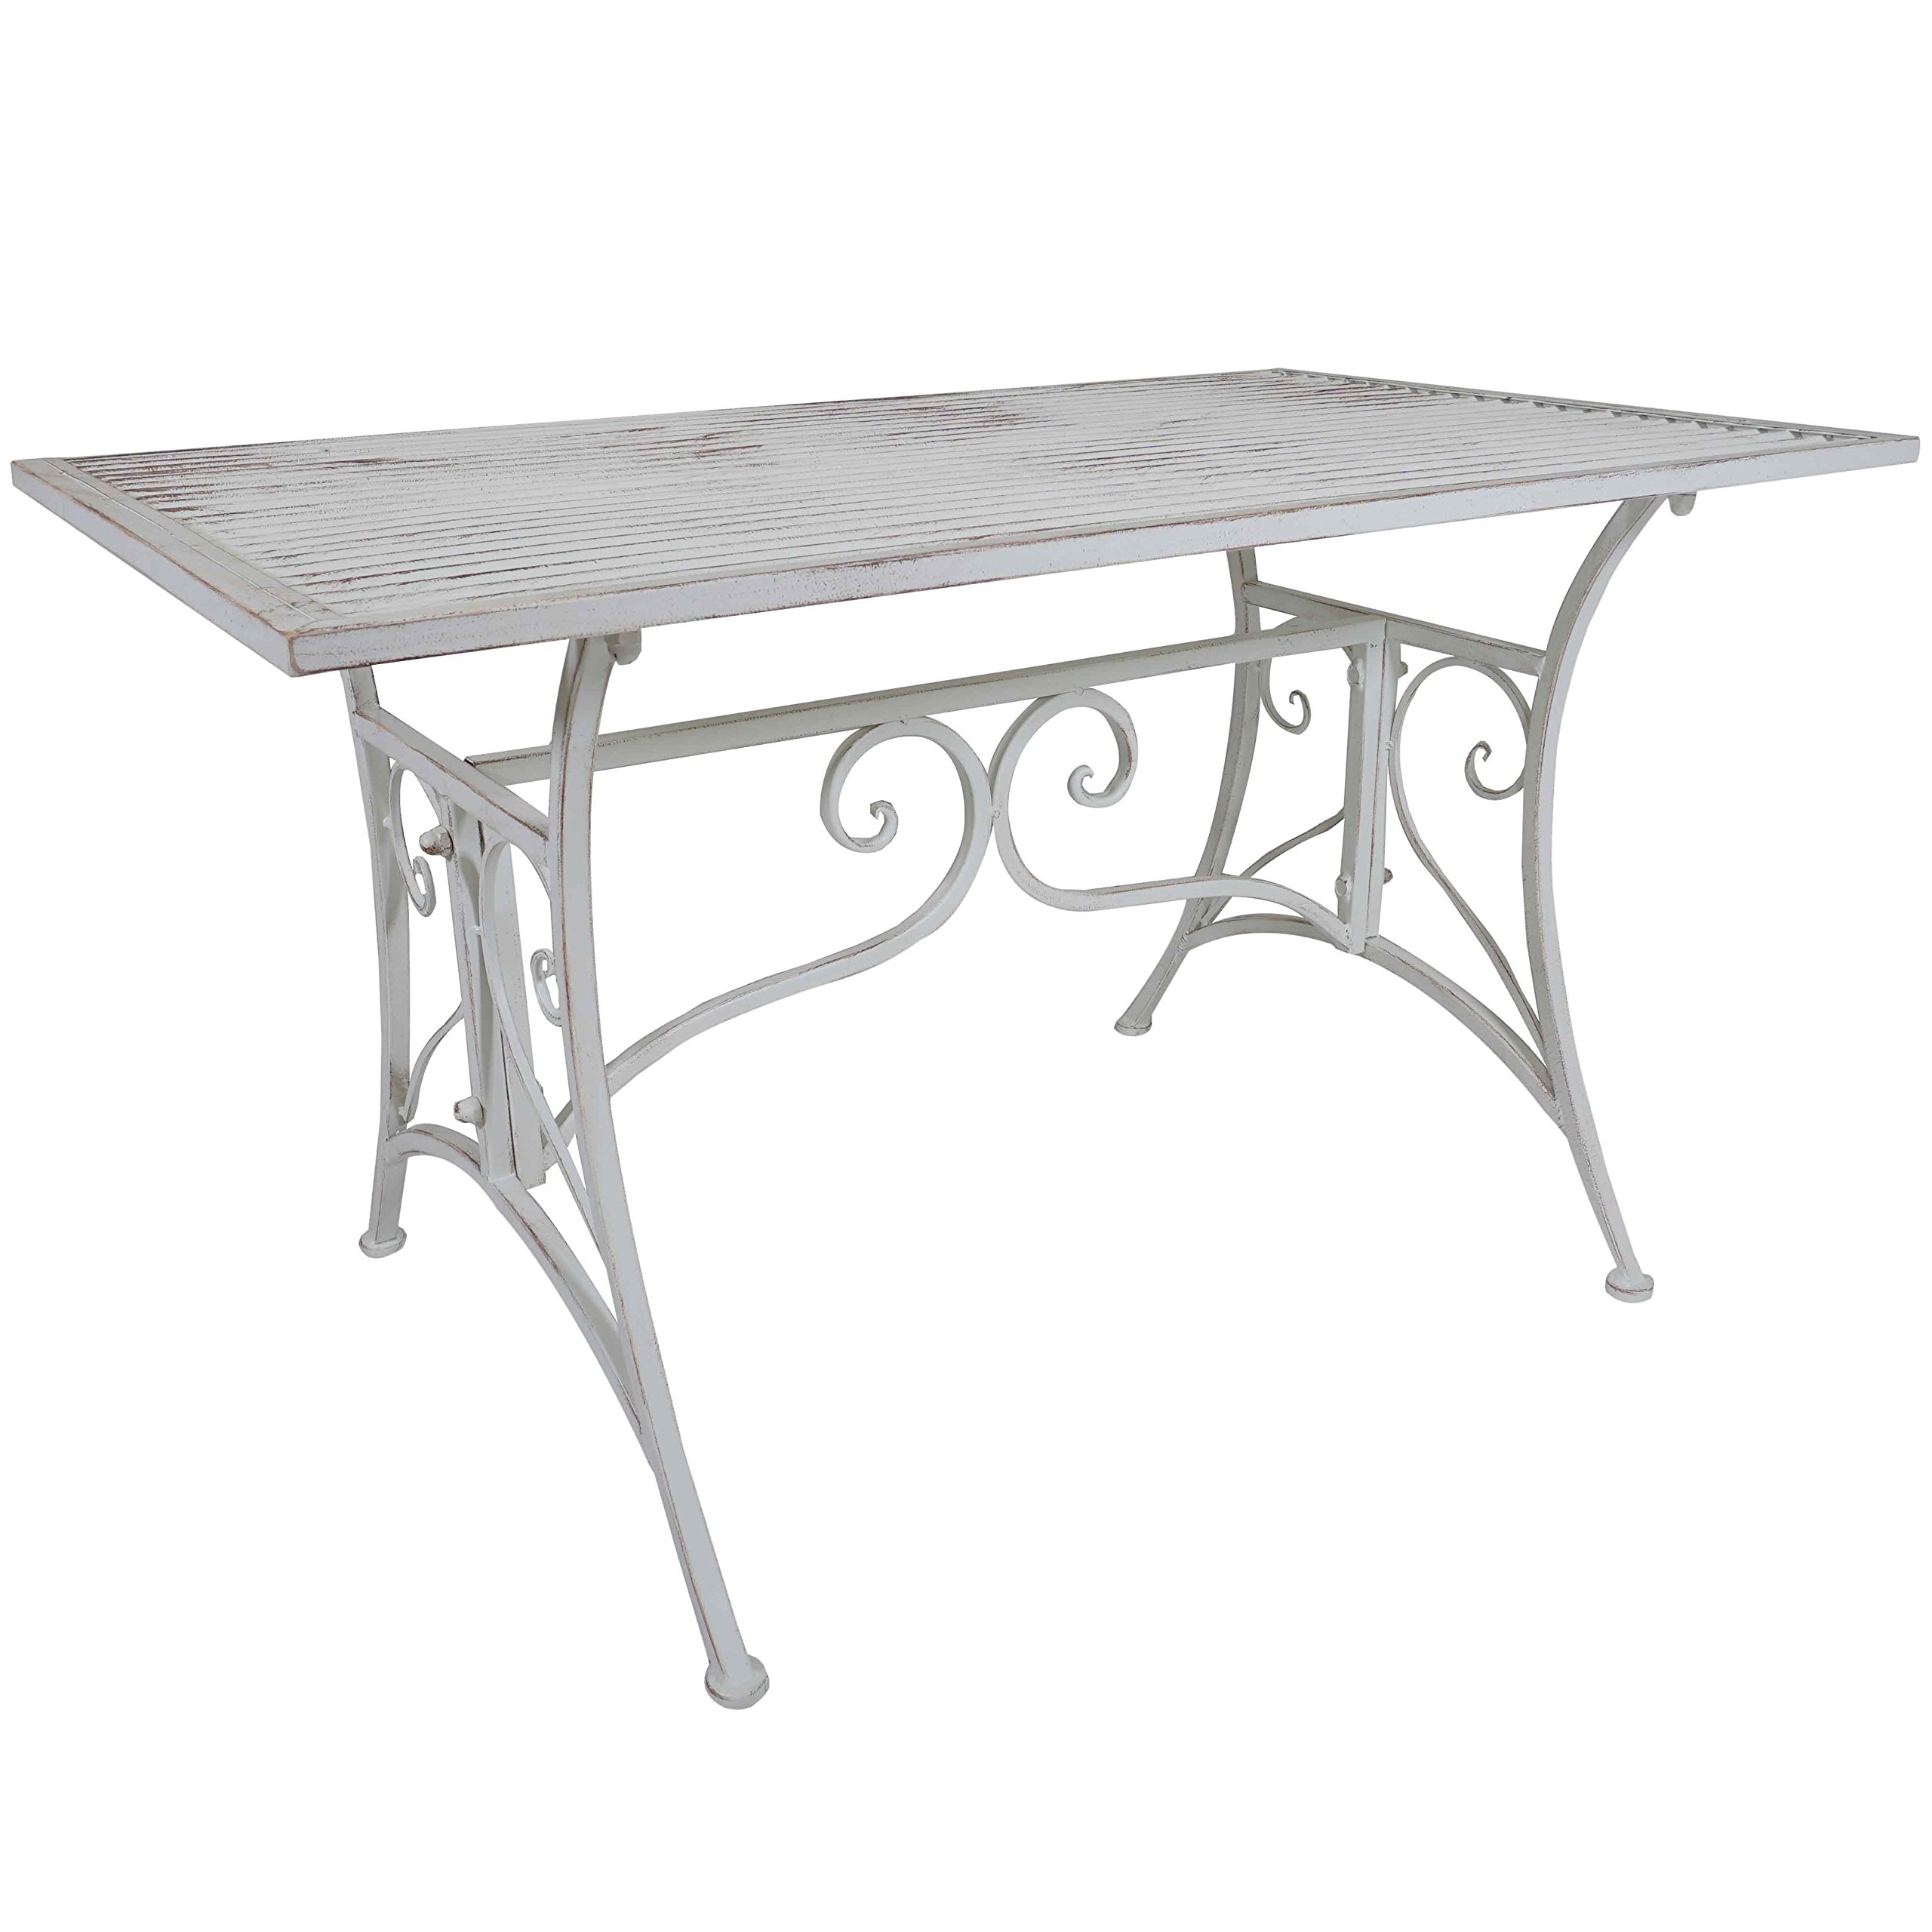 LOVE US Rustic Metal Patio White Coffee Table with Intricate Metal Work for Added Flare, Lightweight and Easily Portable, Sturdy Construction Designed for Stability + Expert Home Guide by LOVE US